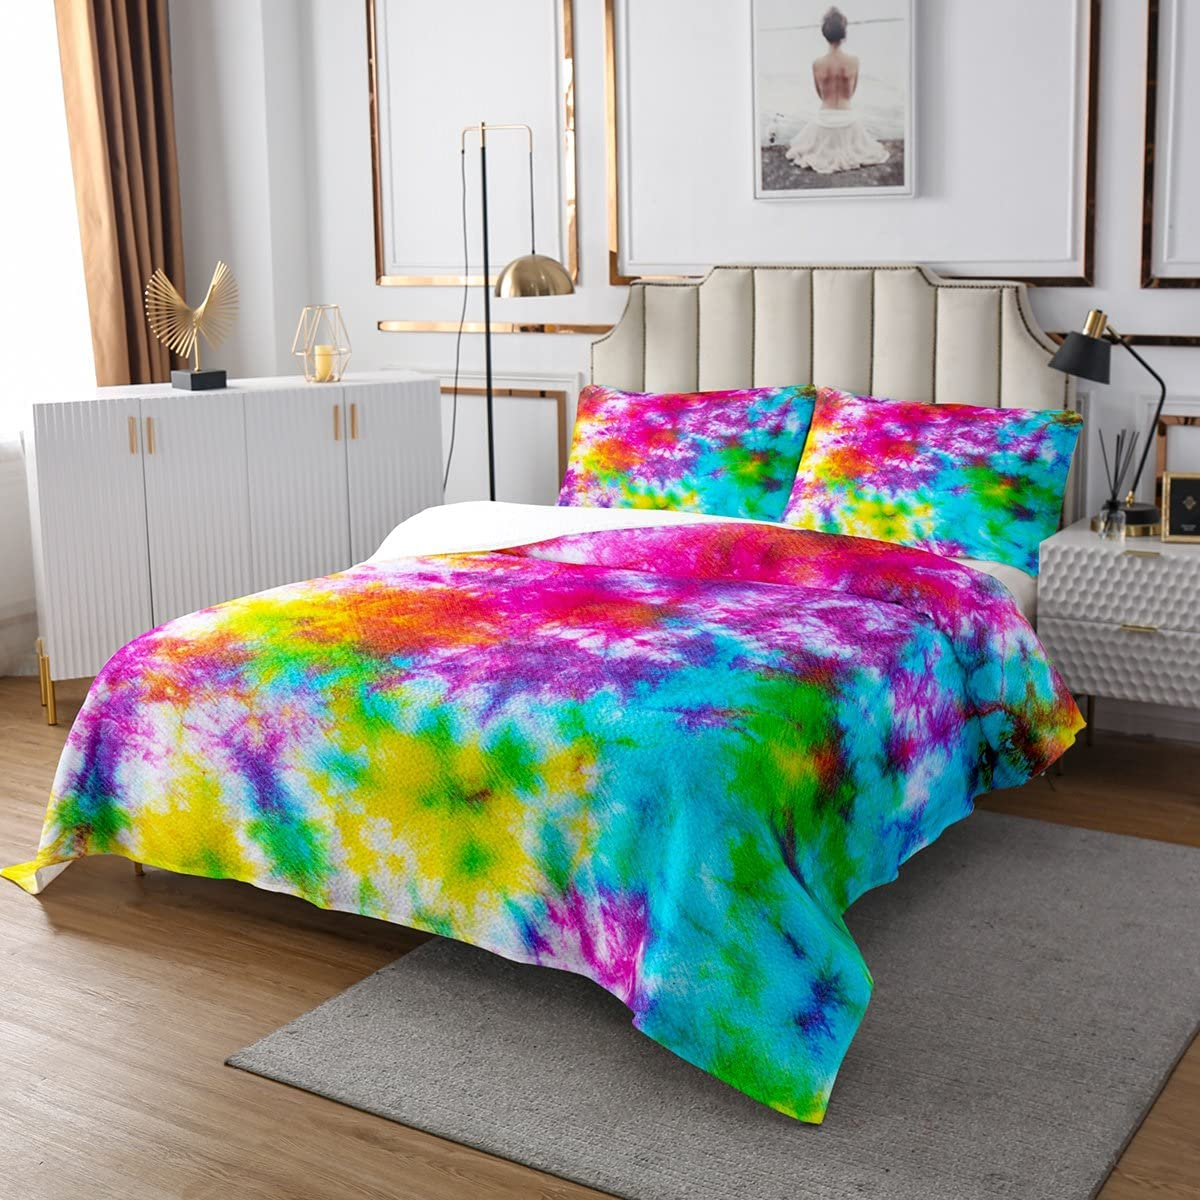 Indefinitely Castle Fairy Multicolored Tie Dye Pink Yellow Set Coverlet Quilt supreme